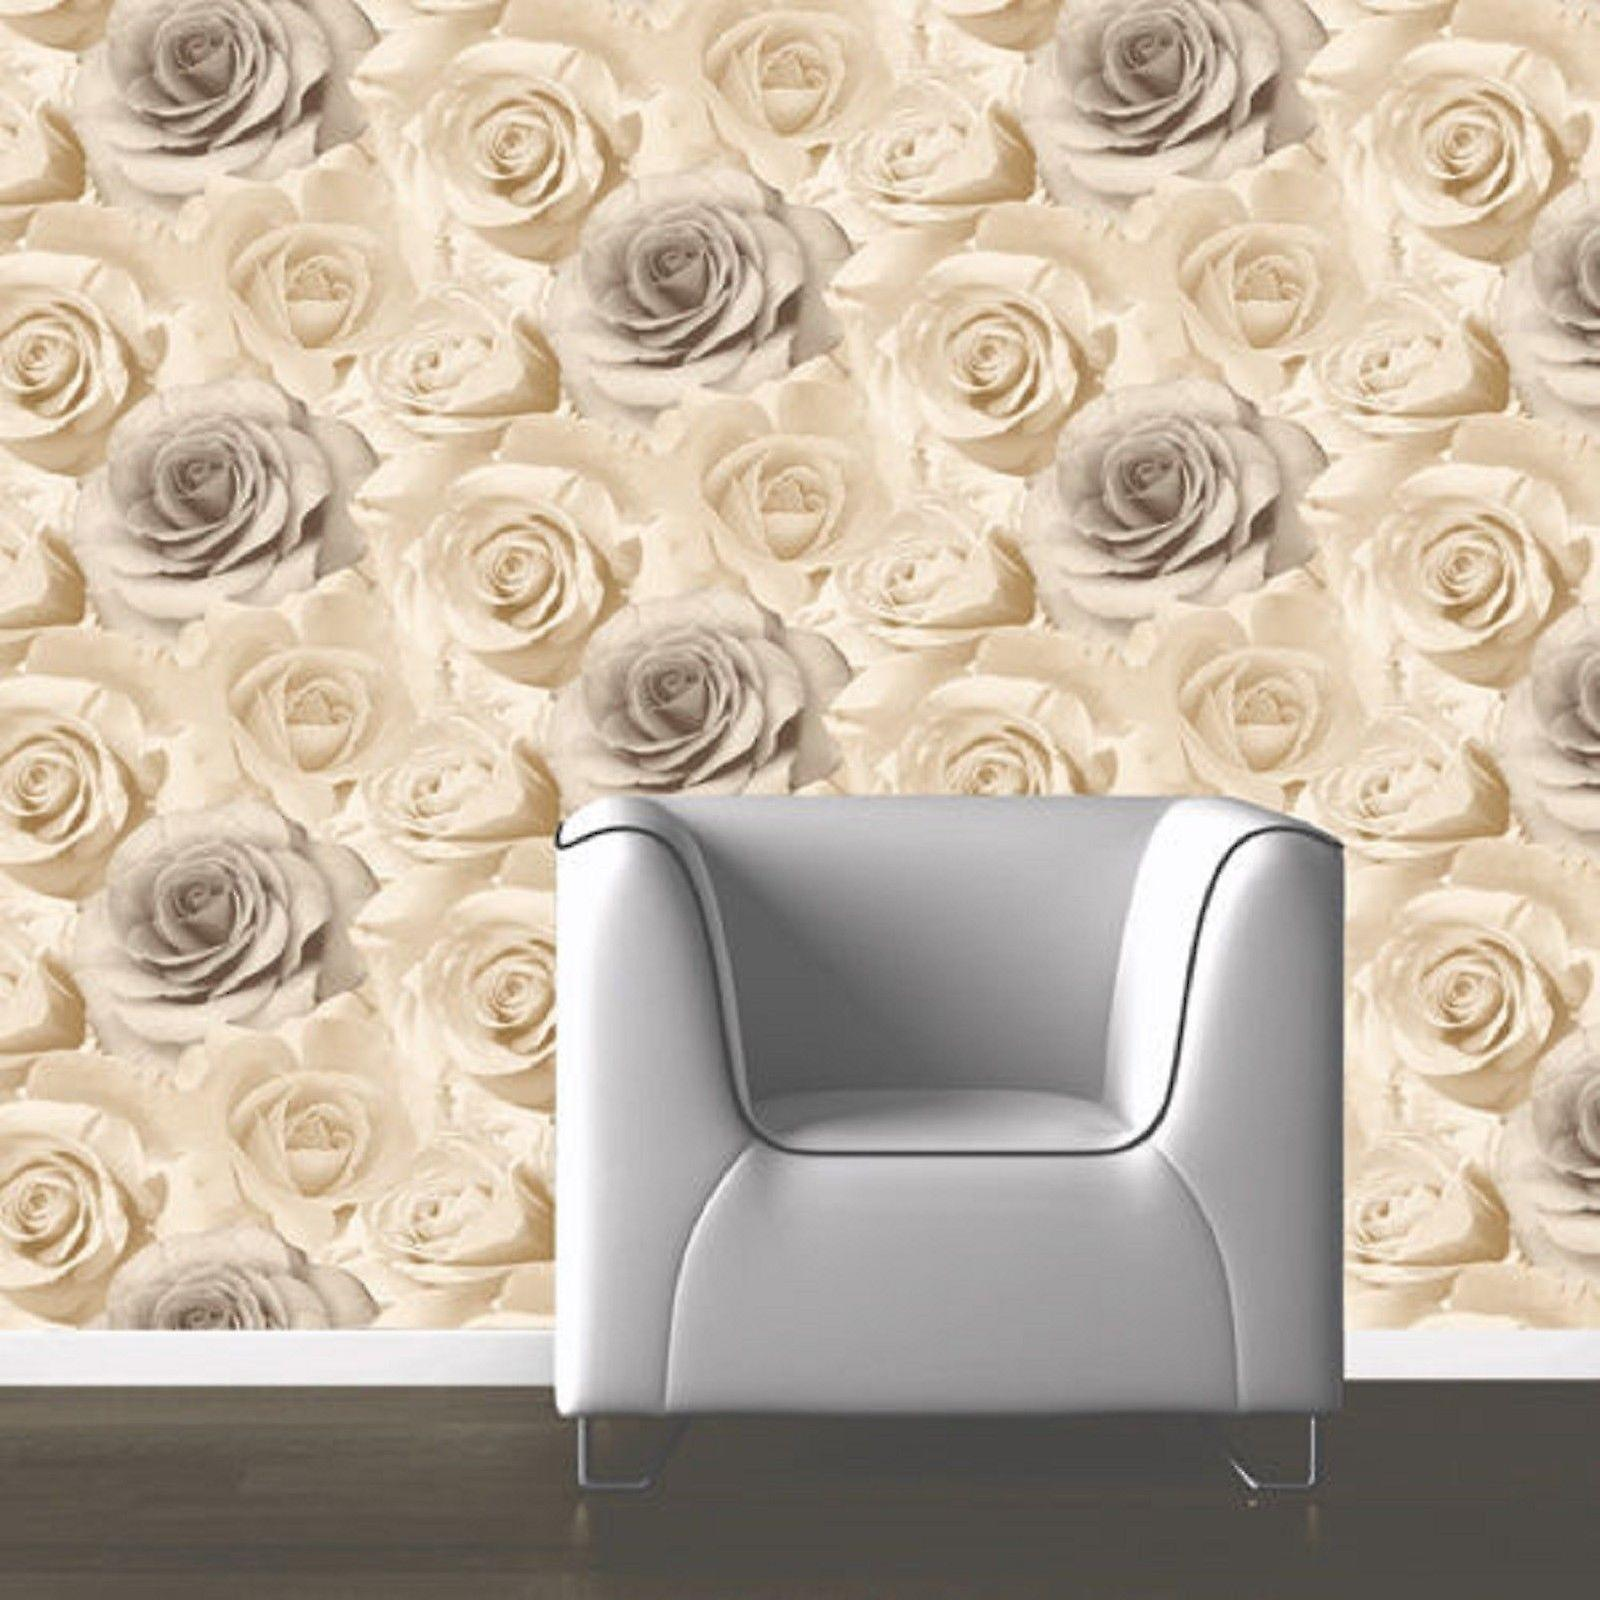 Muriva Madison Floral Flower Rose Bloom Beige Feature Wallpaper